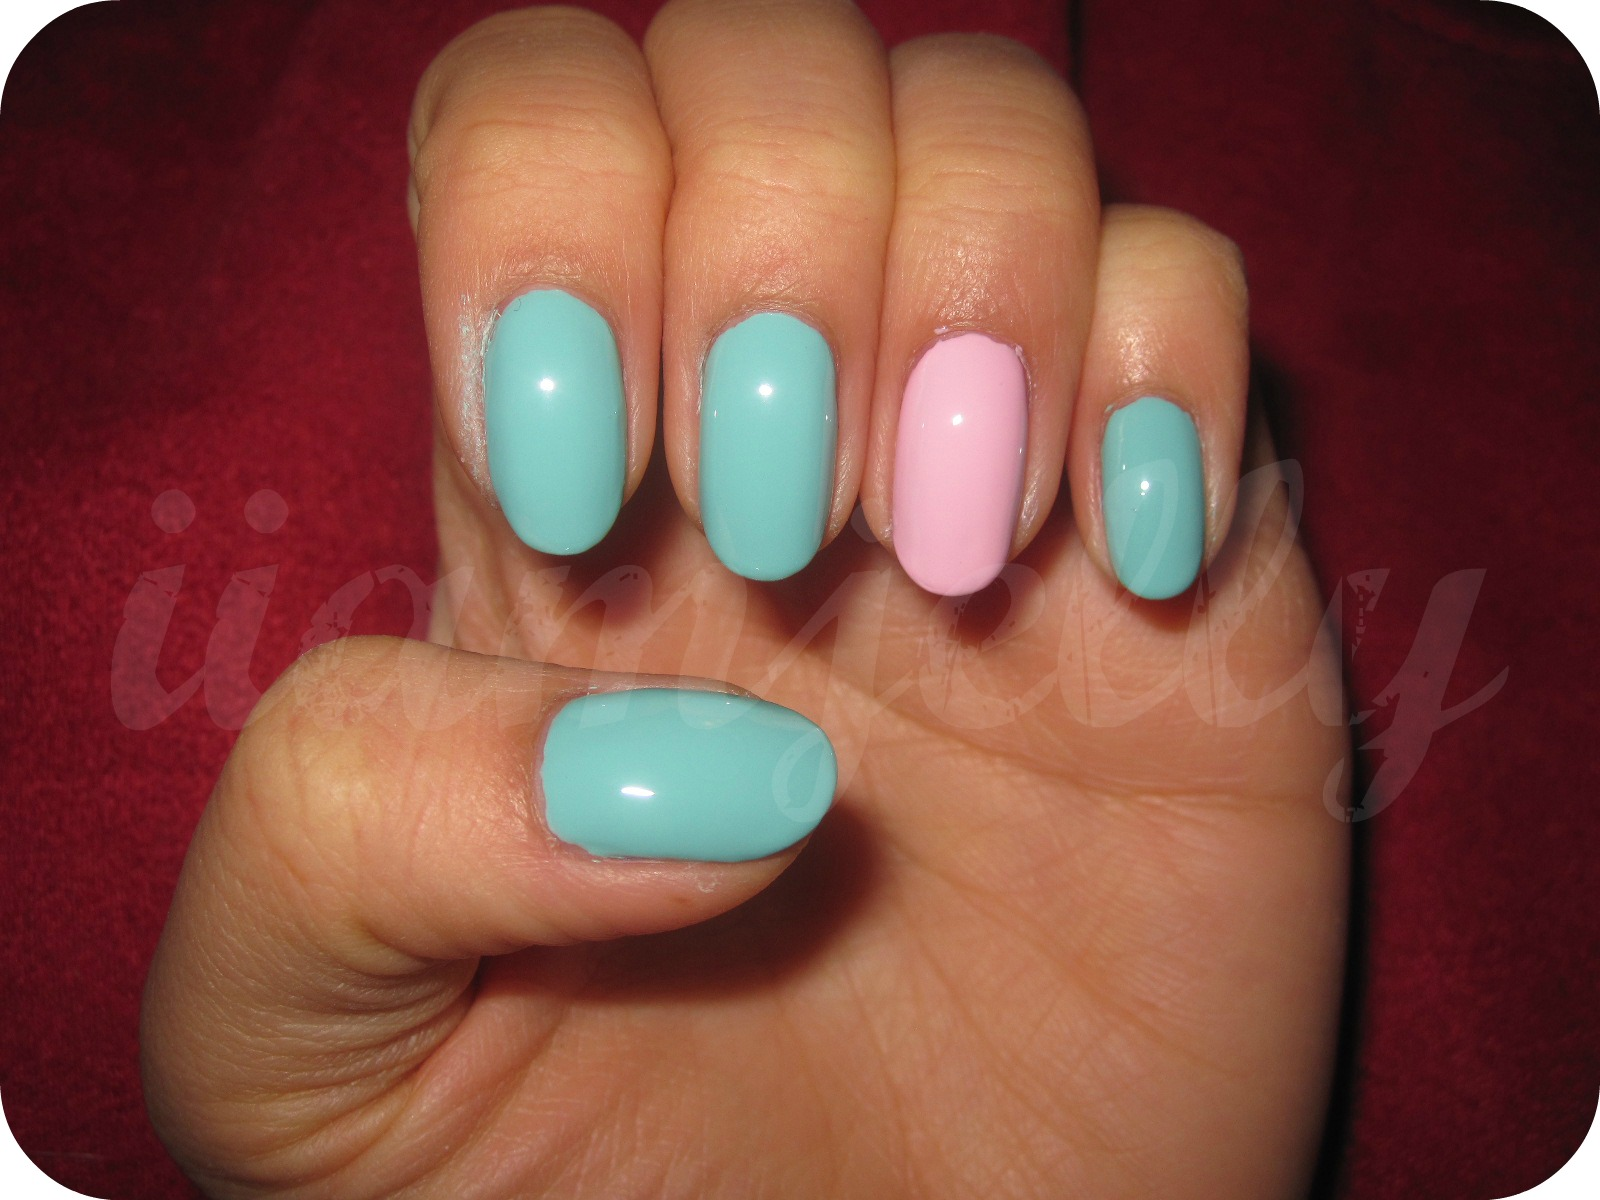 Oval nails design tumblr